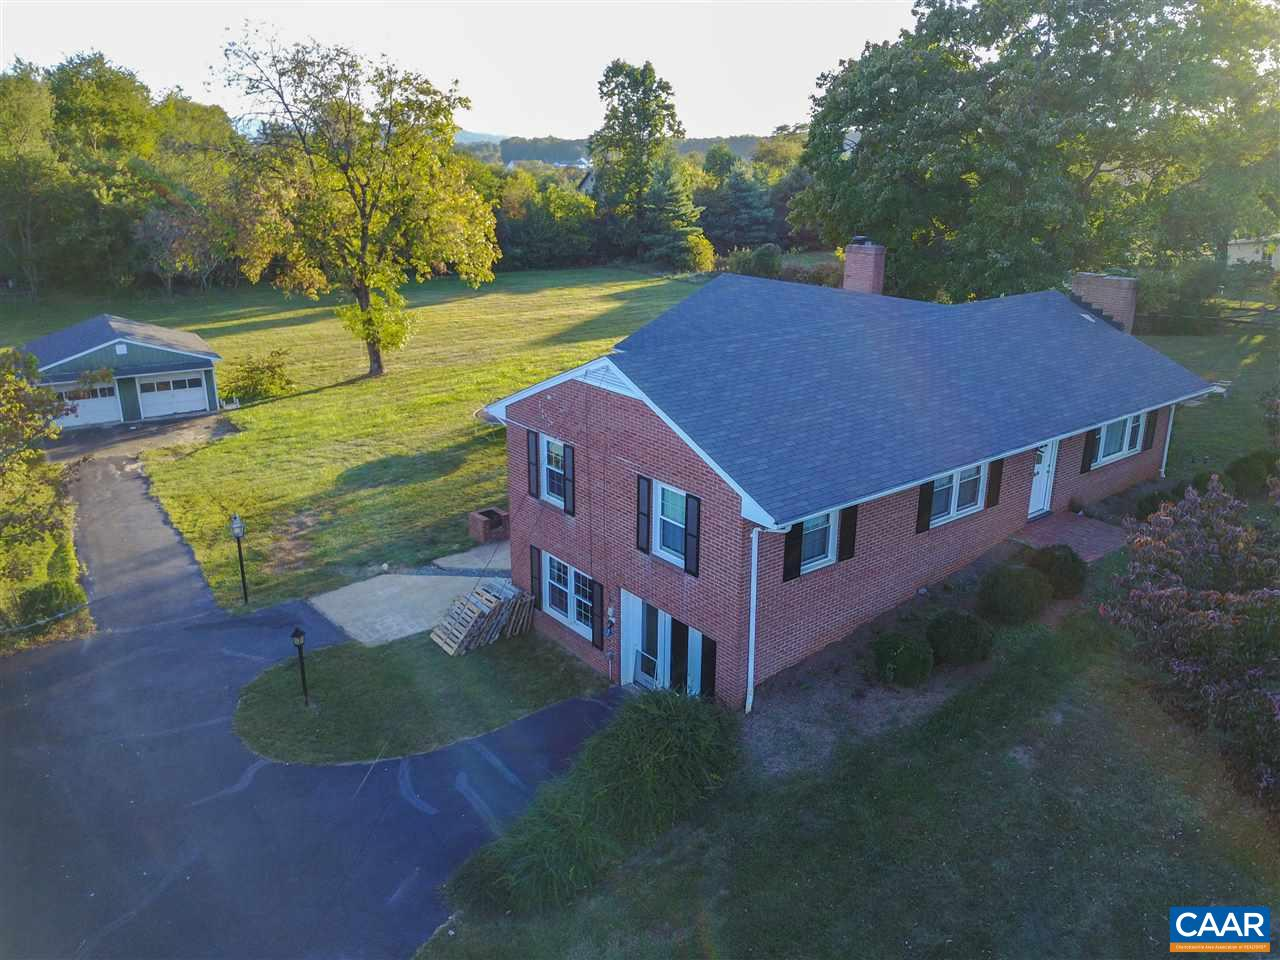 home for sale , MLS #567855, 5967 Jarmans Gap Rd